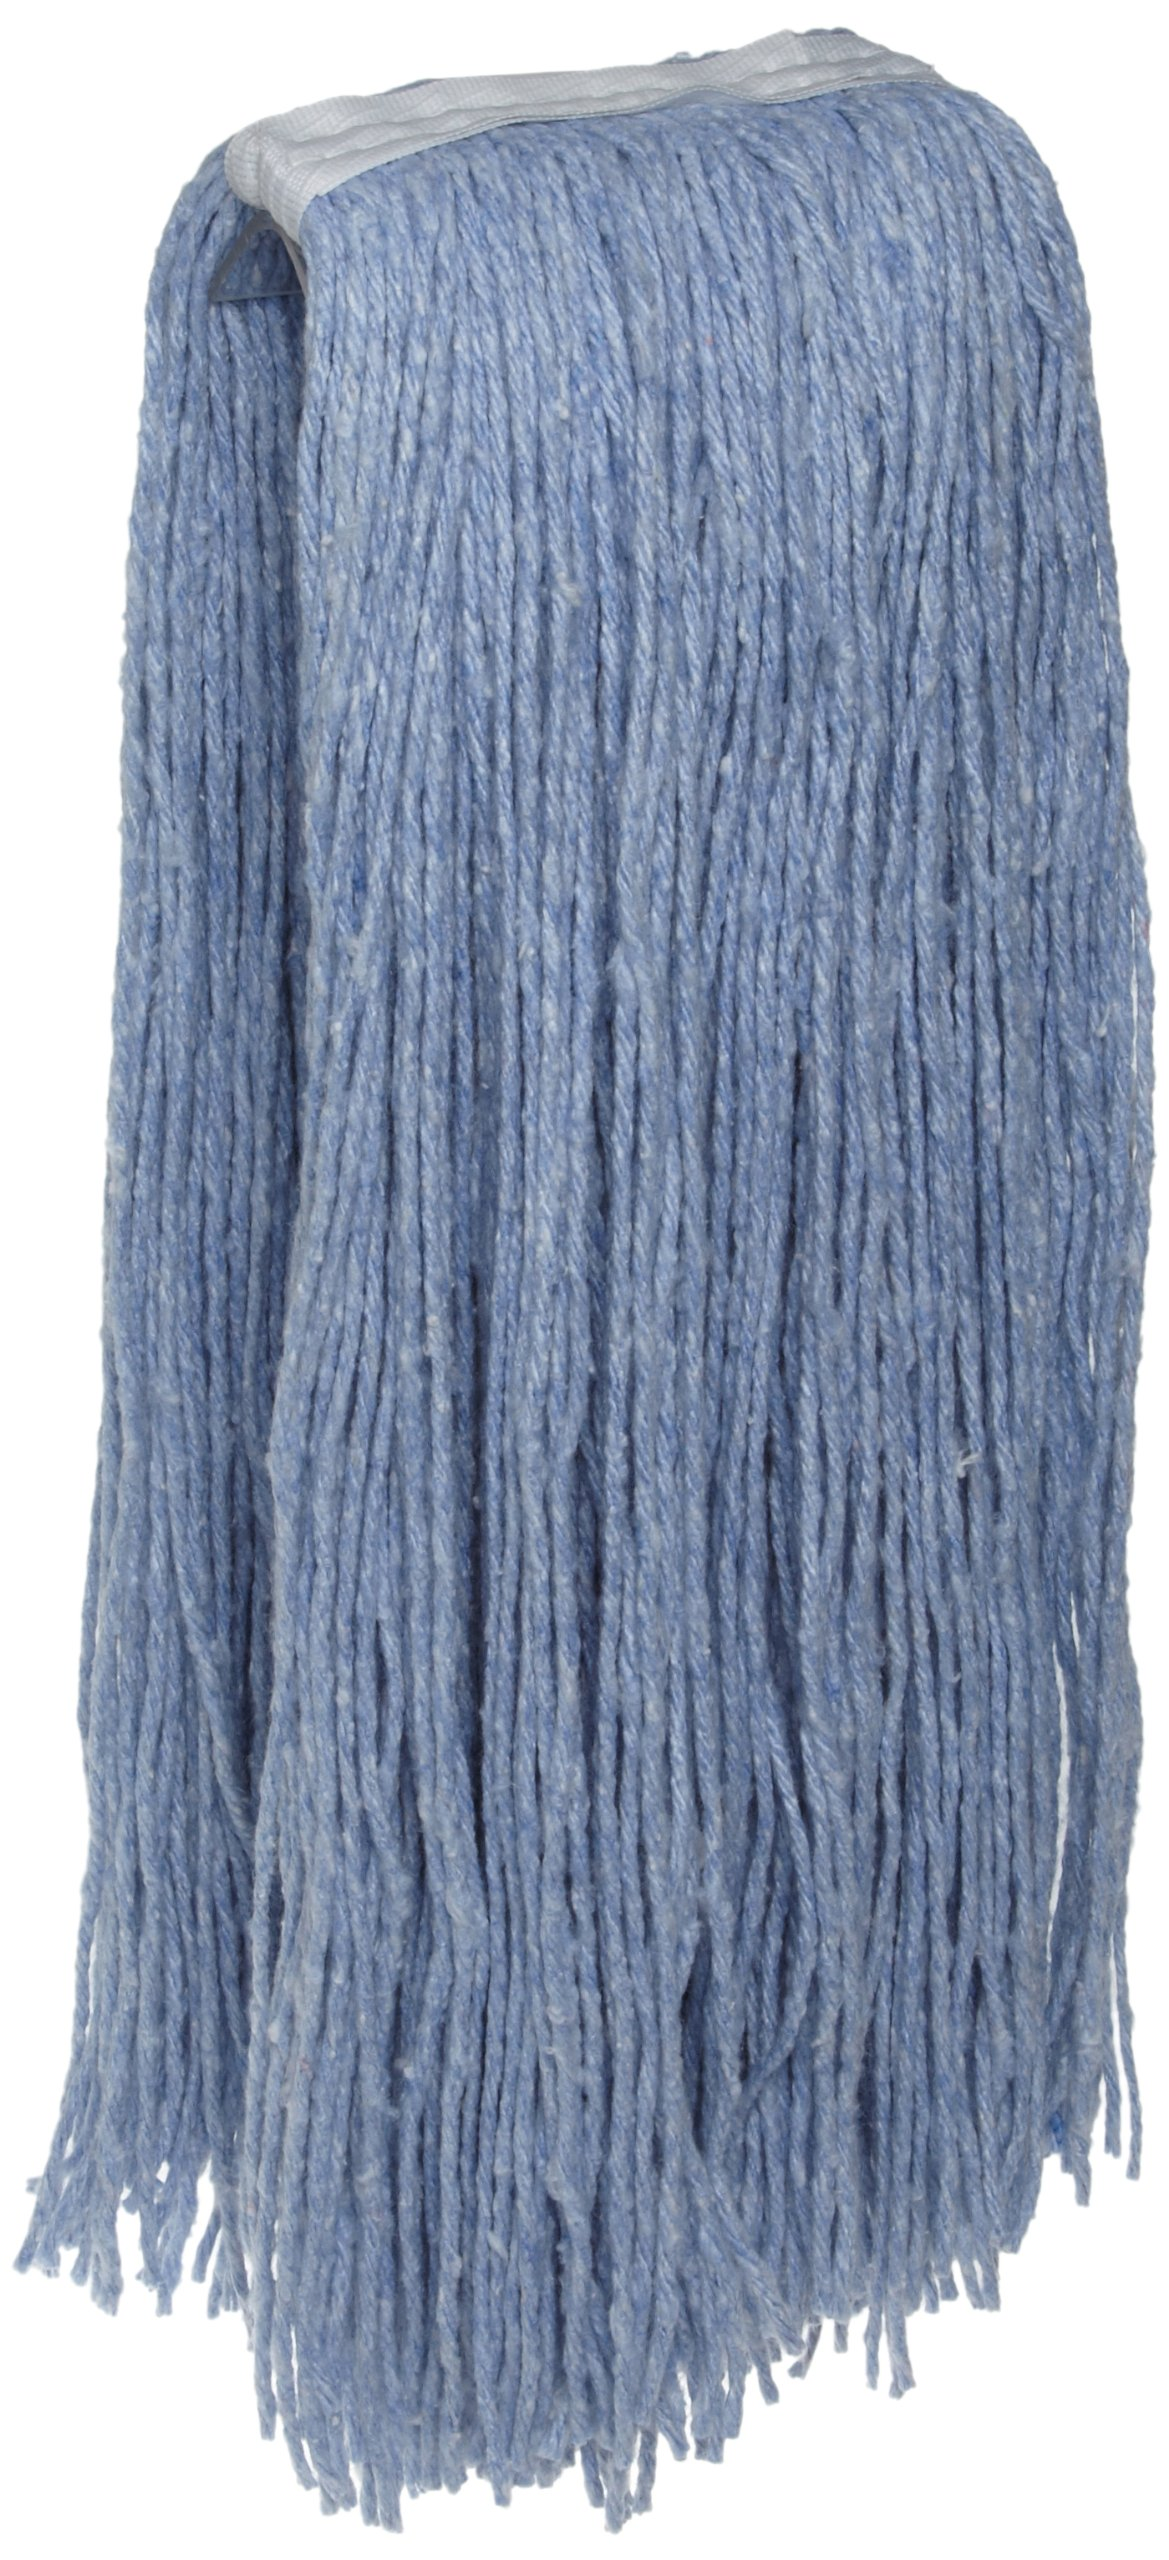 Zephyr 58805 Blue Blend Natural and Synthetic Blend #32 Economy Cut End Mop Head (Pack of 12)